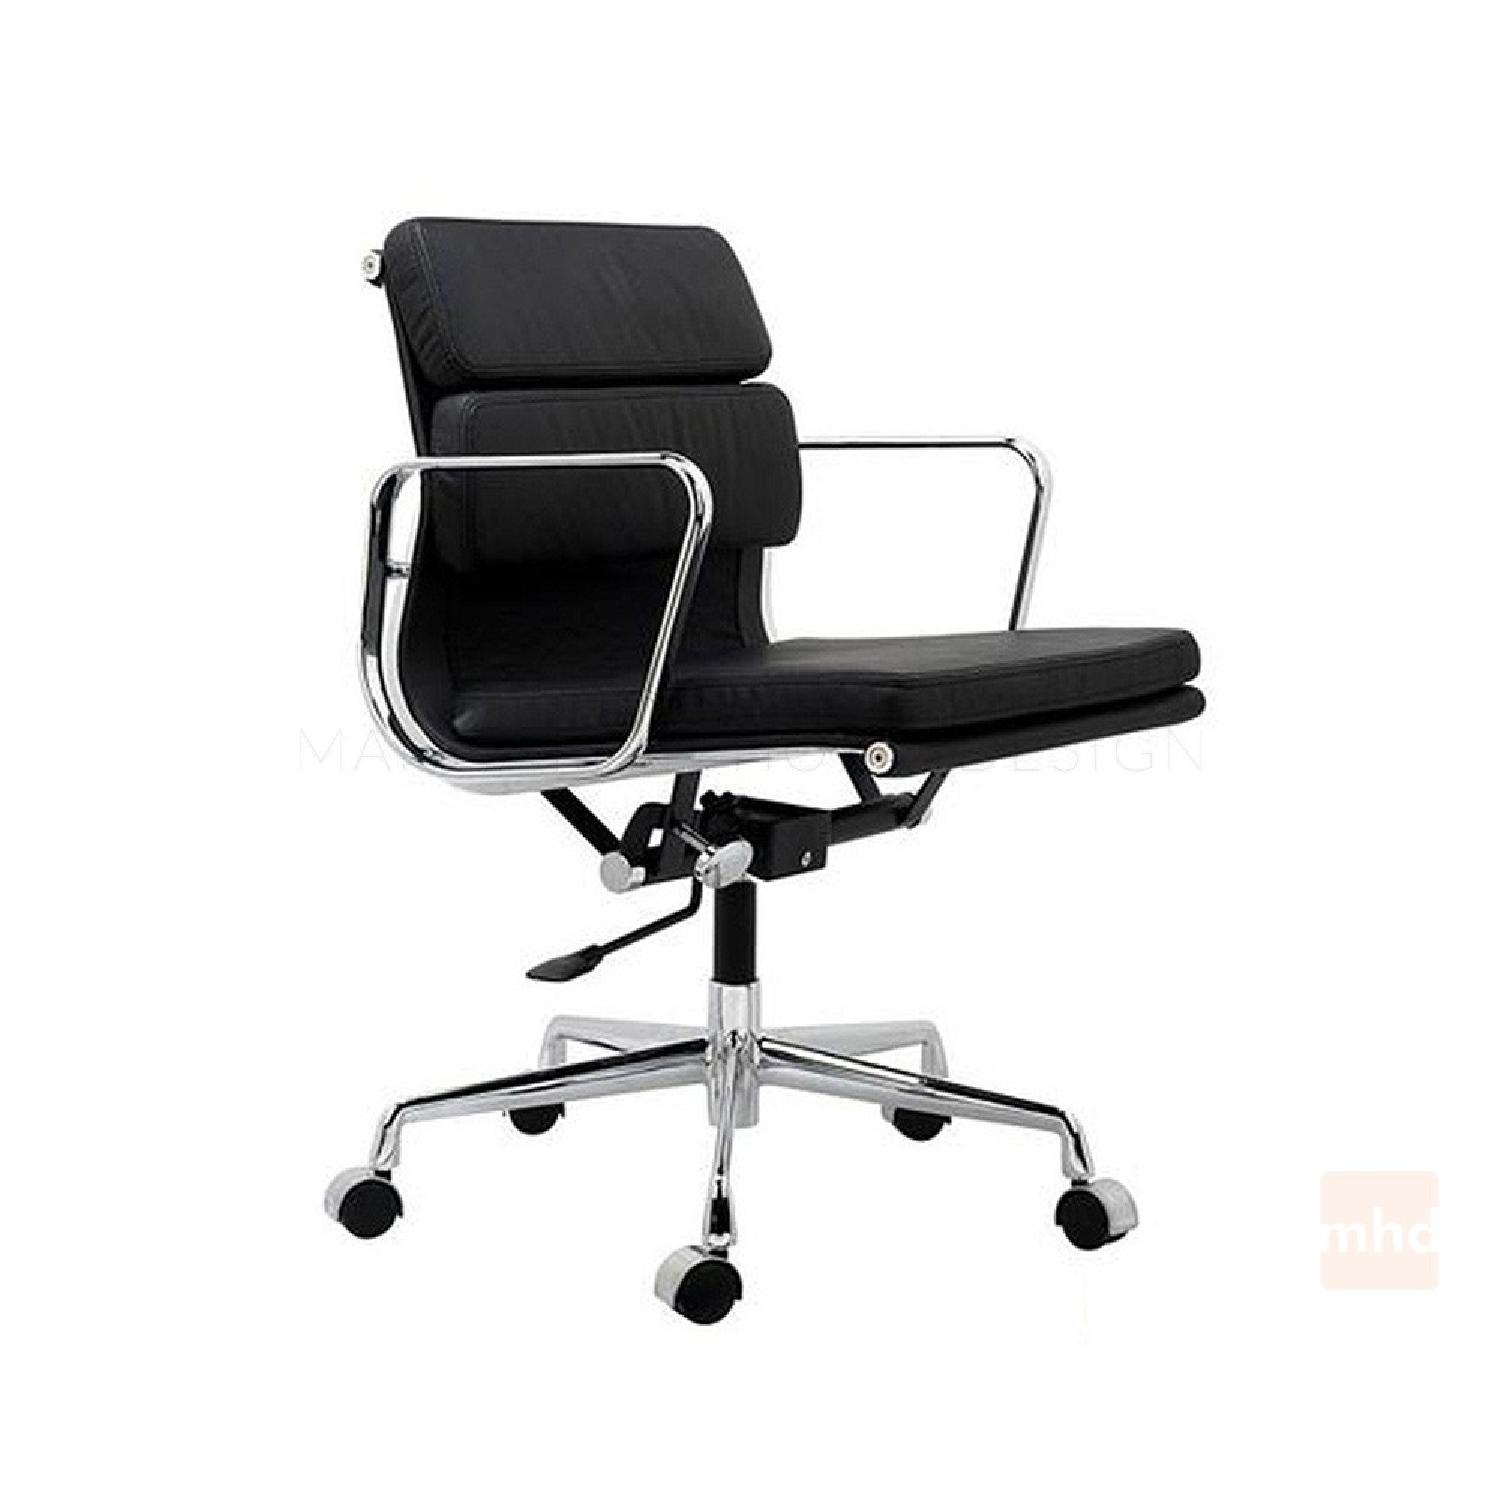 Eames Soft Pad Management Chair Replica